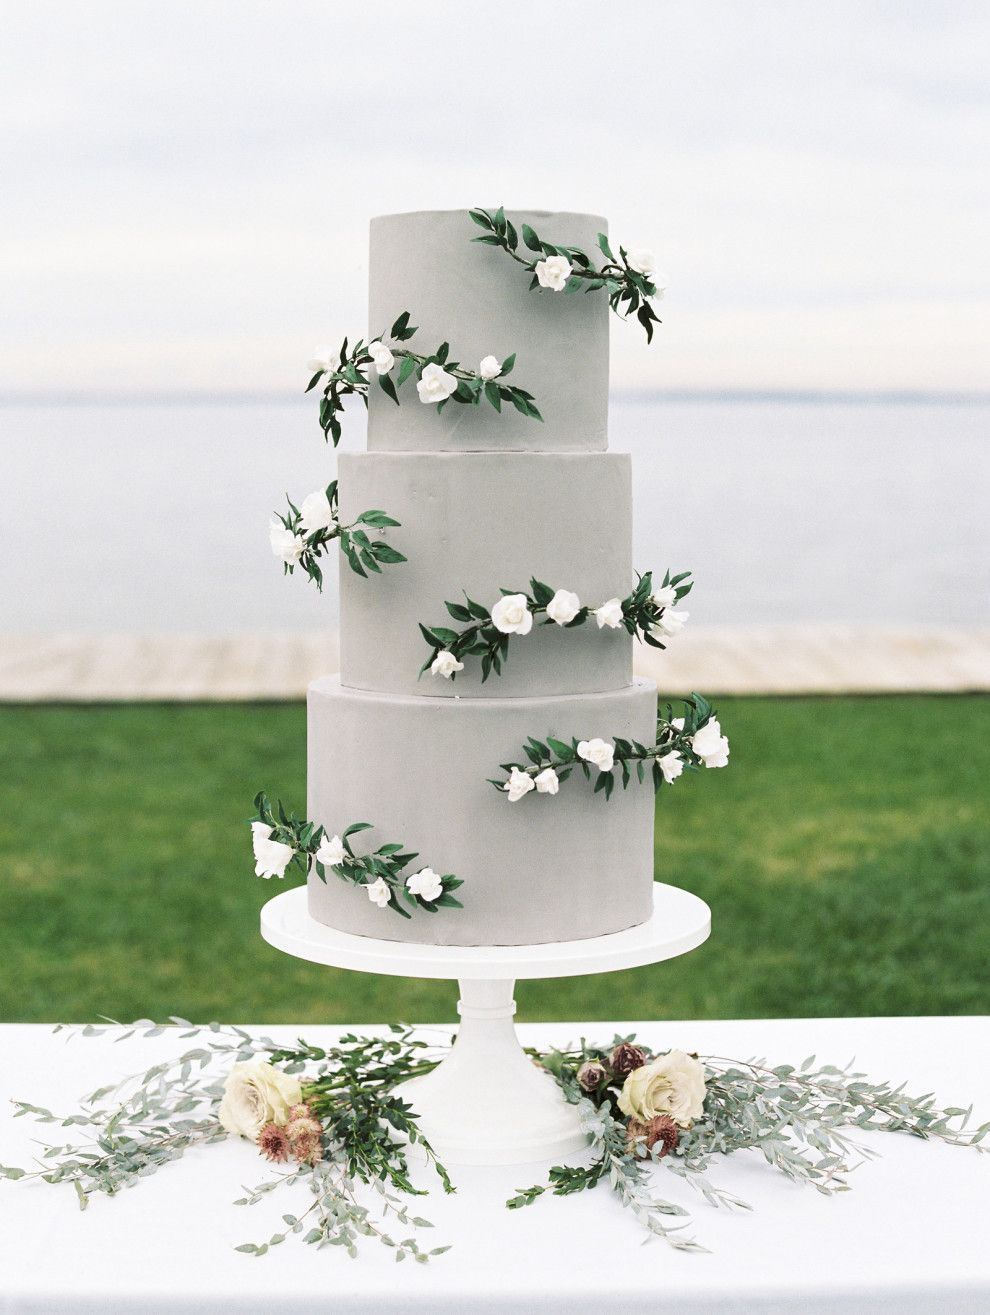 Wedding decoration ideas in kerala  Gray cake with delicate sprigs of flowers and greens Created by